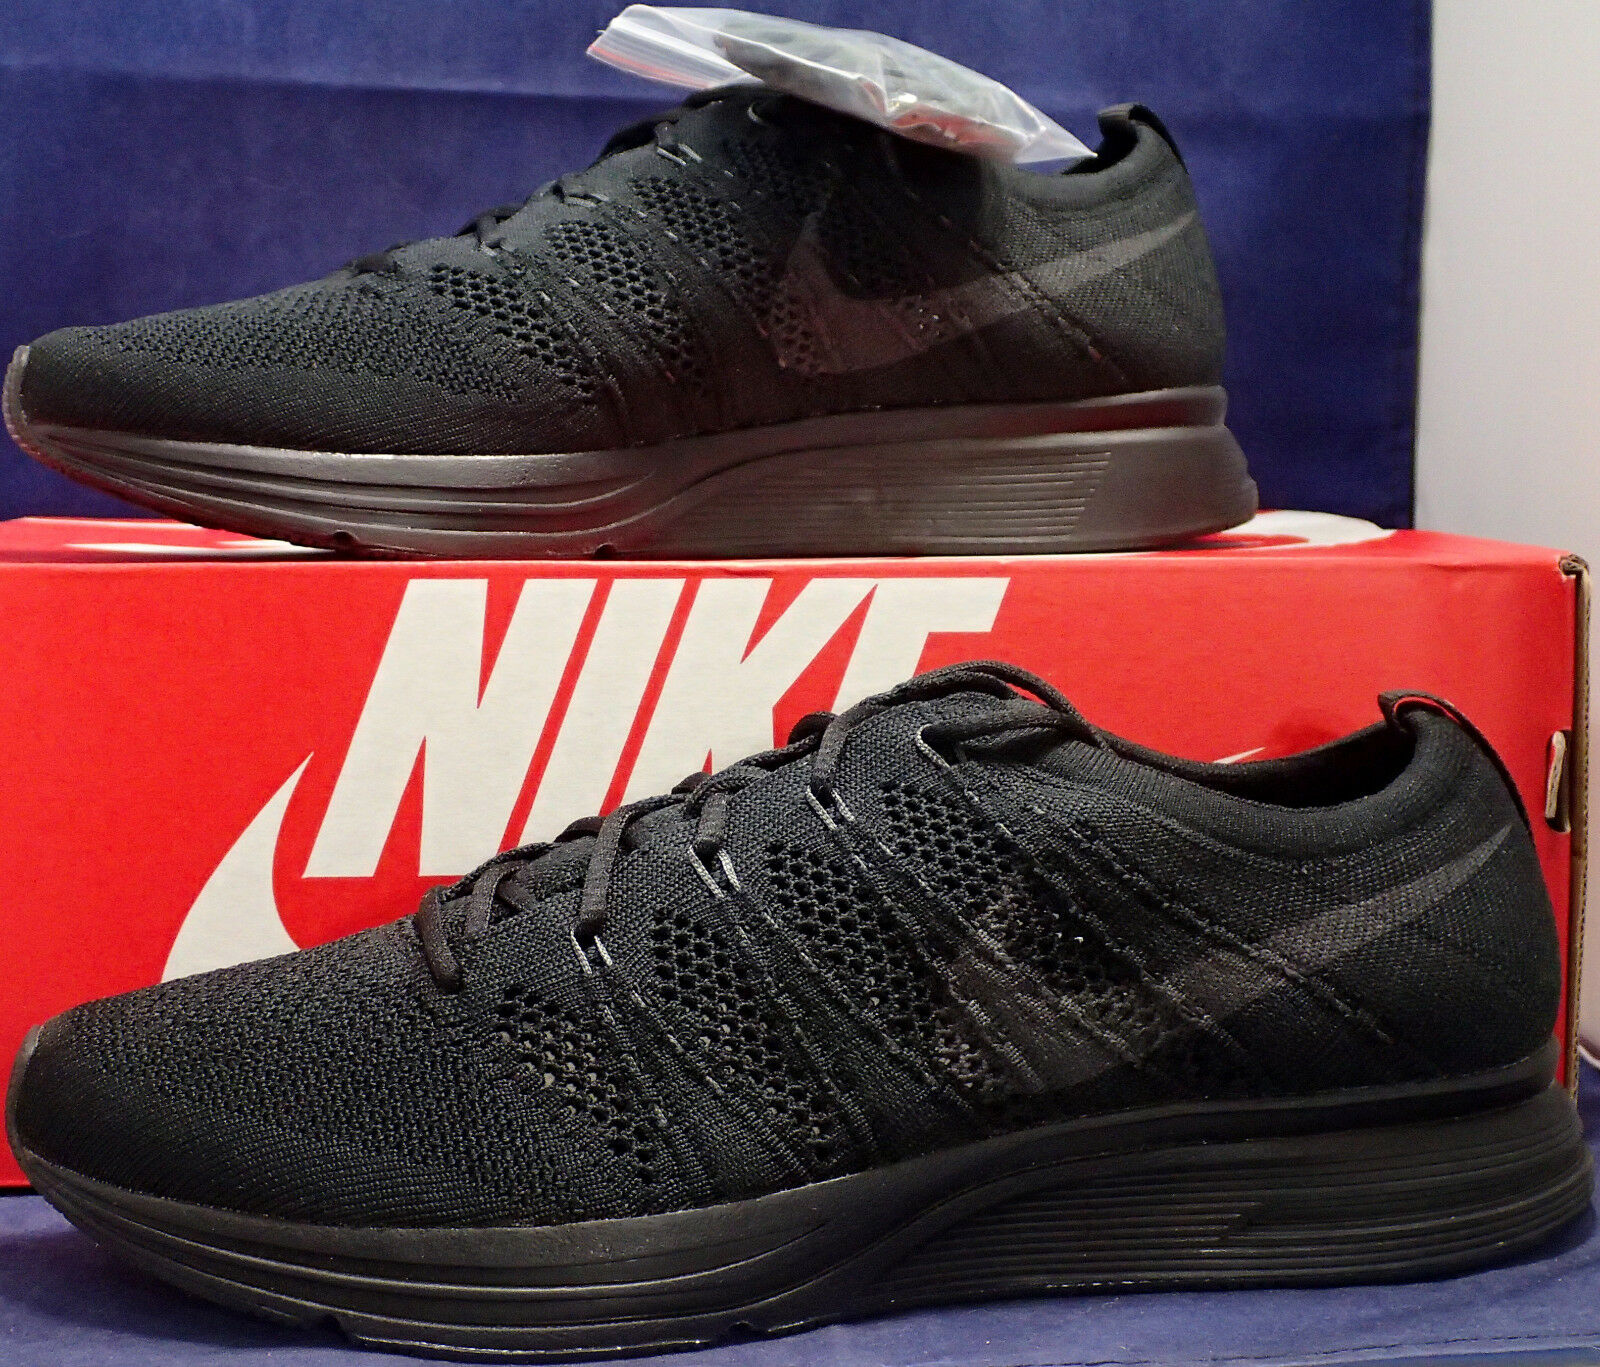 Nike Flyknit Trainer Black ) Anthracite SZ 8 ( AH8396-004 ) Black db8c5d